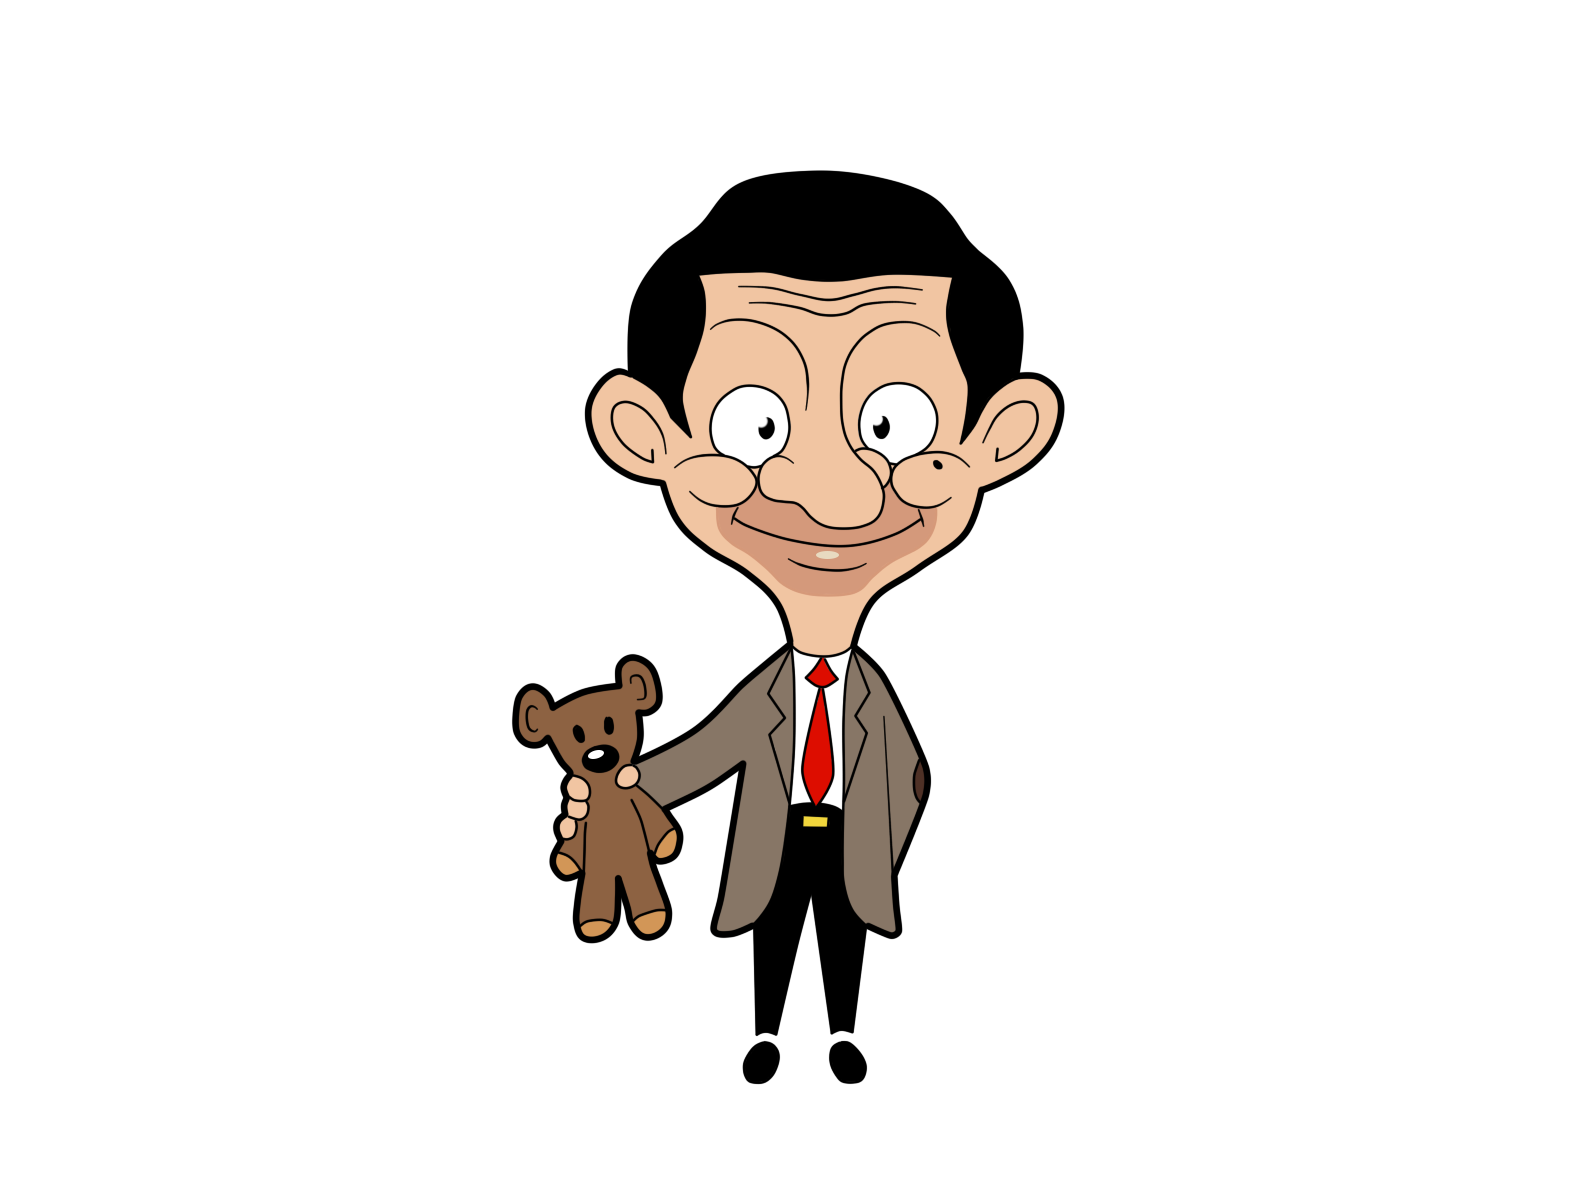 Beans vector animated. Mr bean png clipart